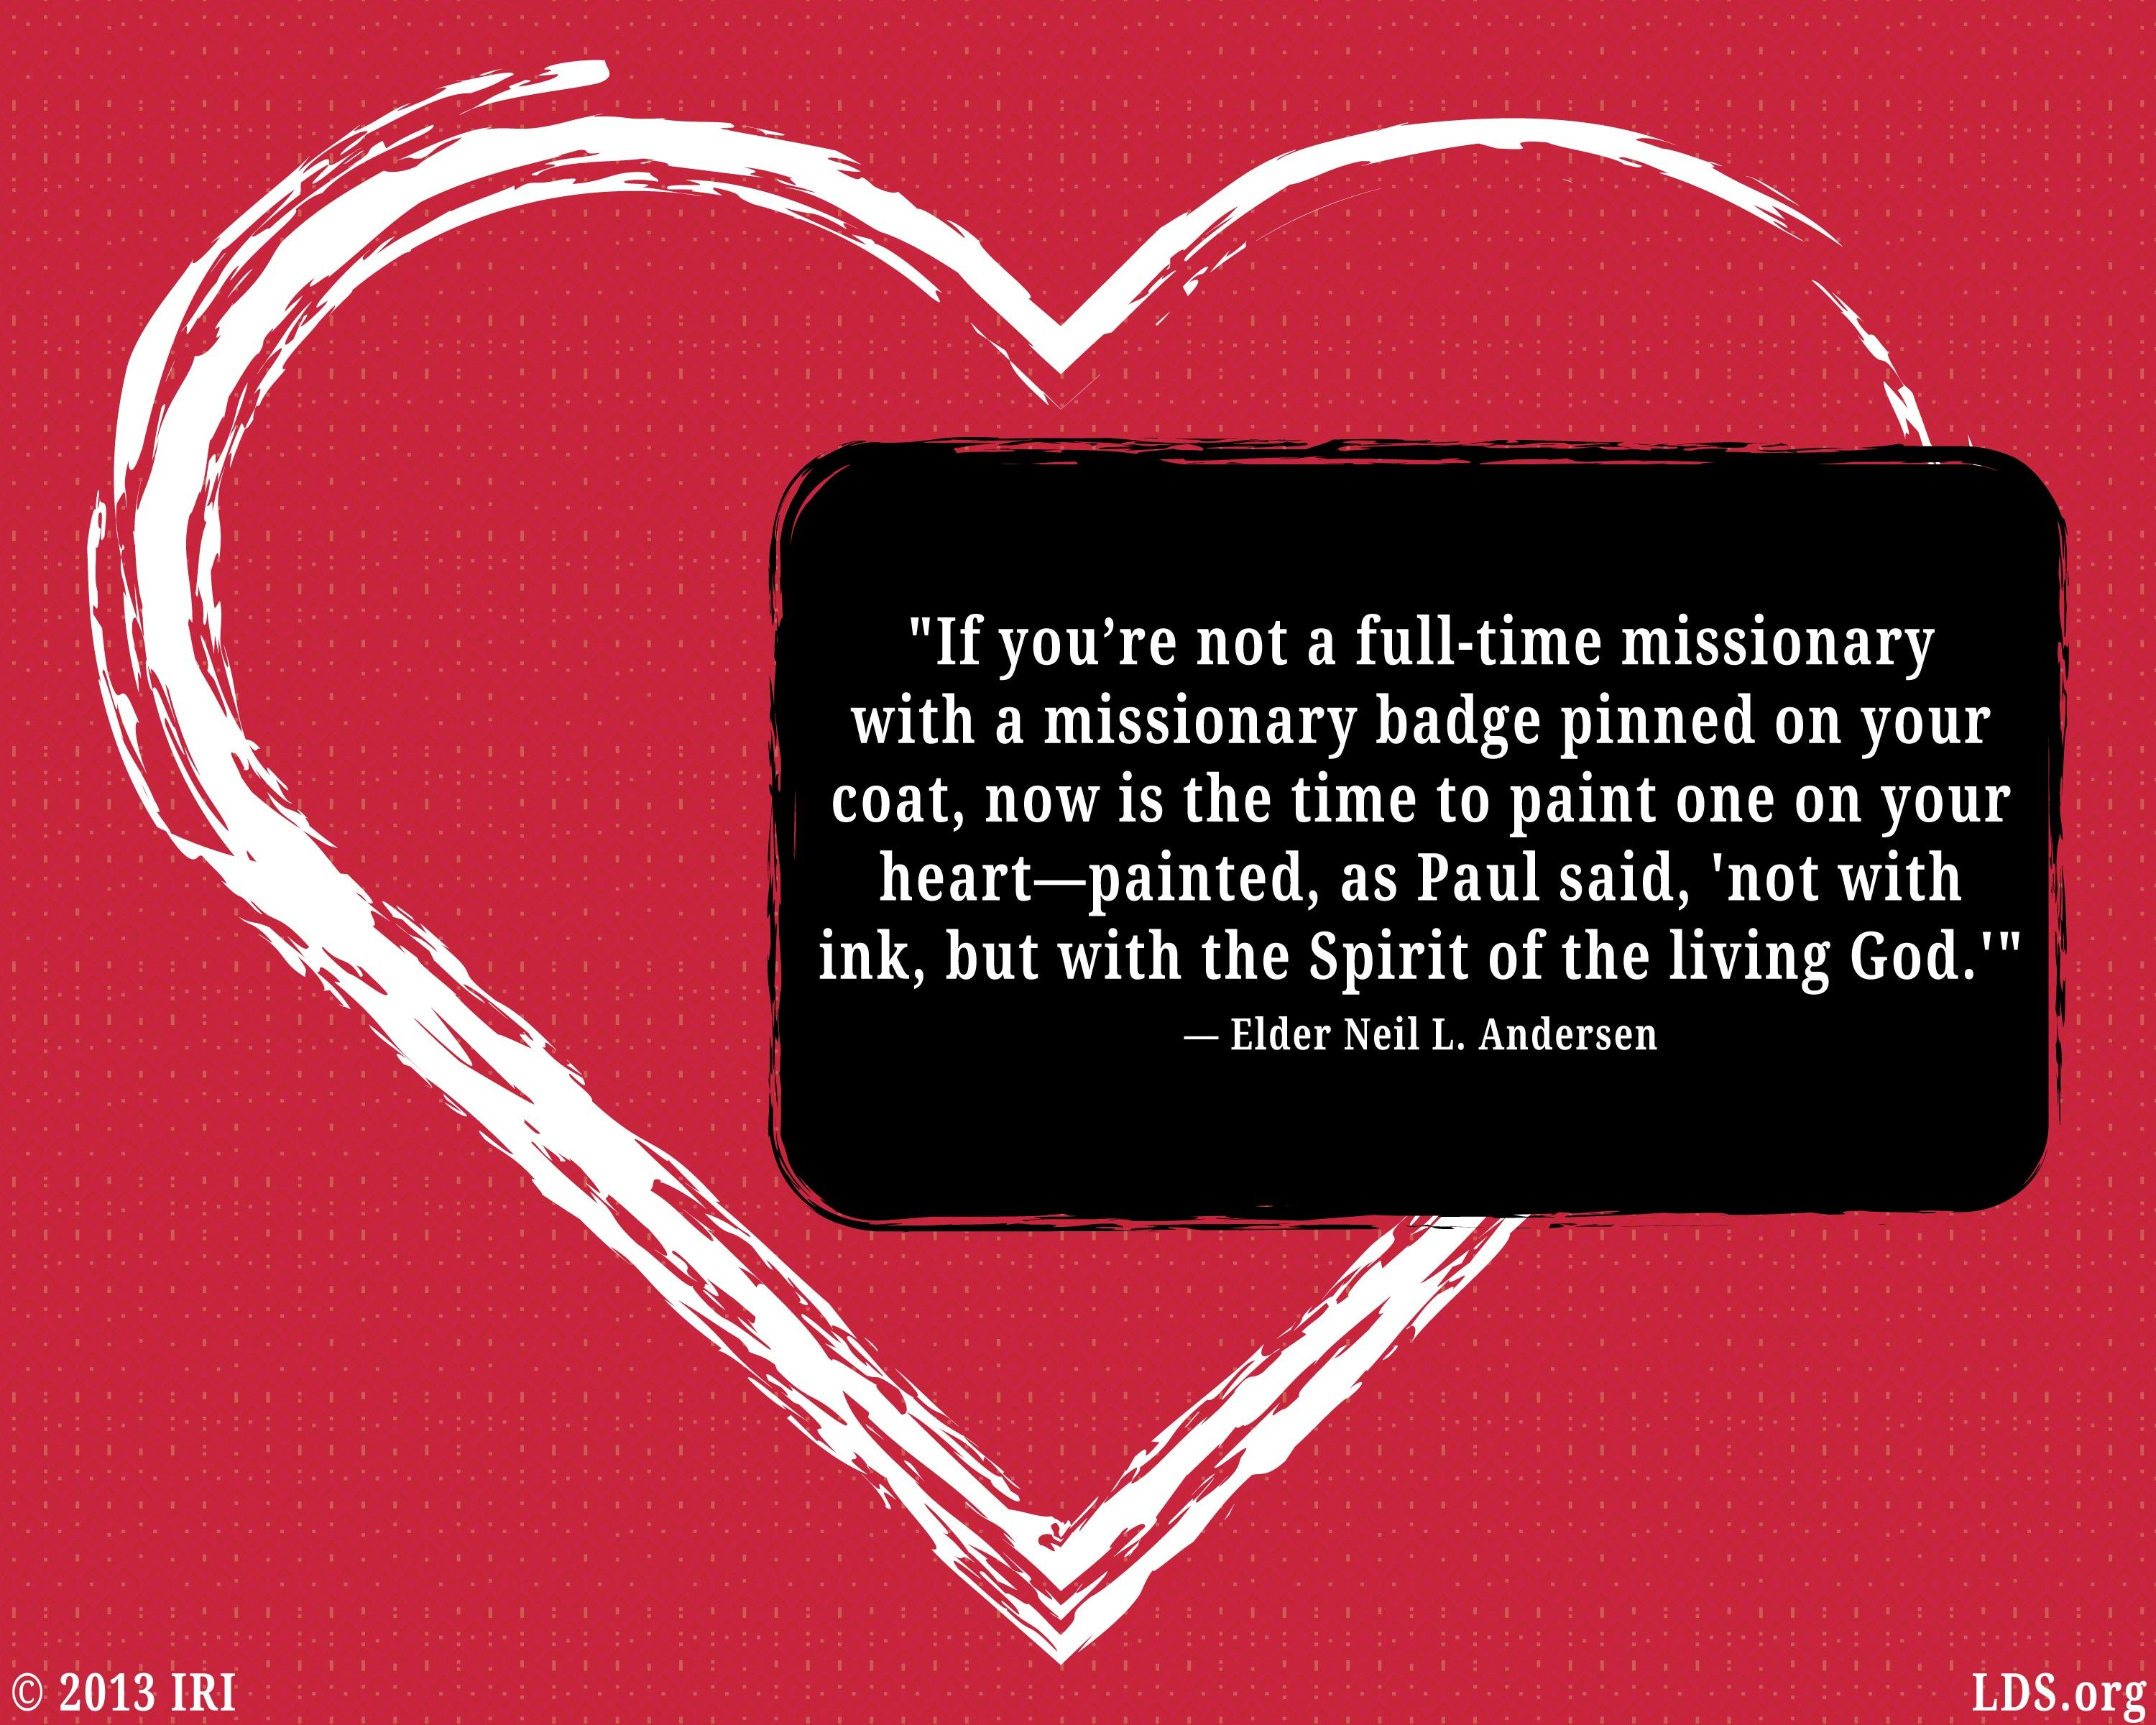 """""""If you're not a full-time missionary with a missionary badge pinned on your coat, now is the time to paint one on your heart—painted, as Paul said, 'not with ink, but with the Spirit of the Living God.'""""—Elder Neil L. Andersen, """"It's a Miracle"""""""